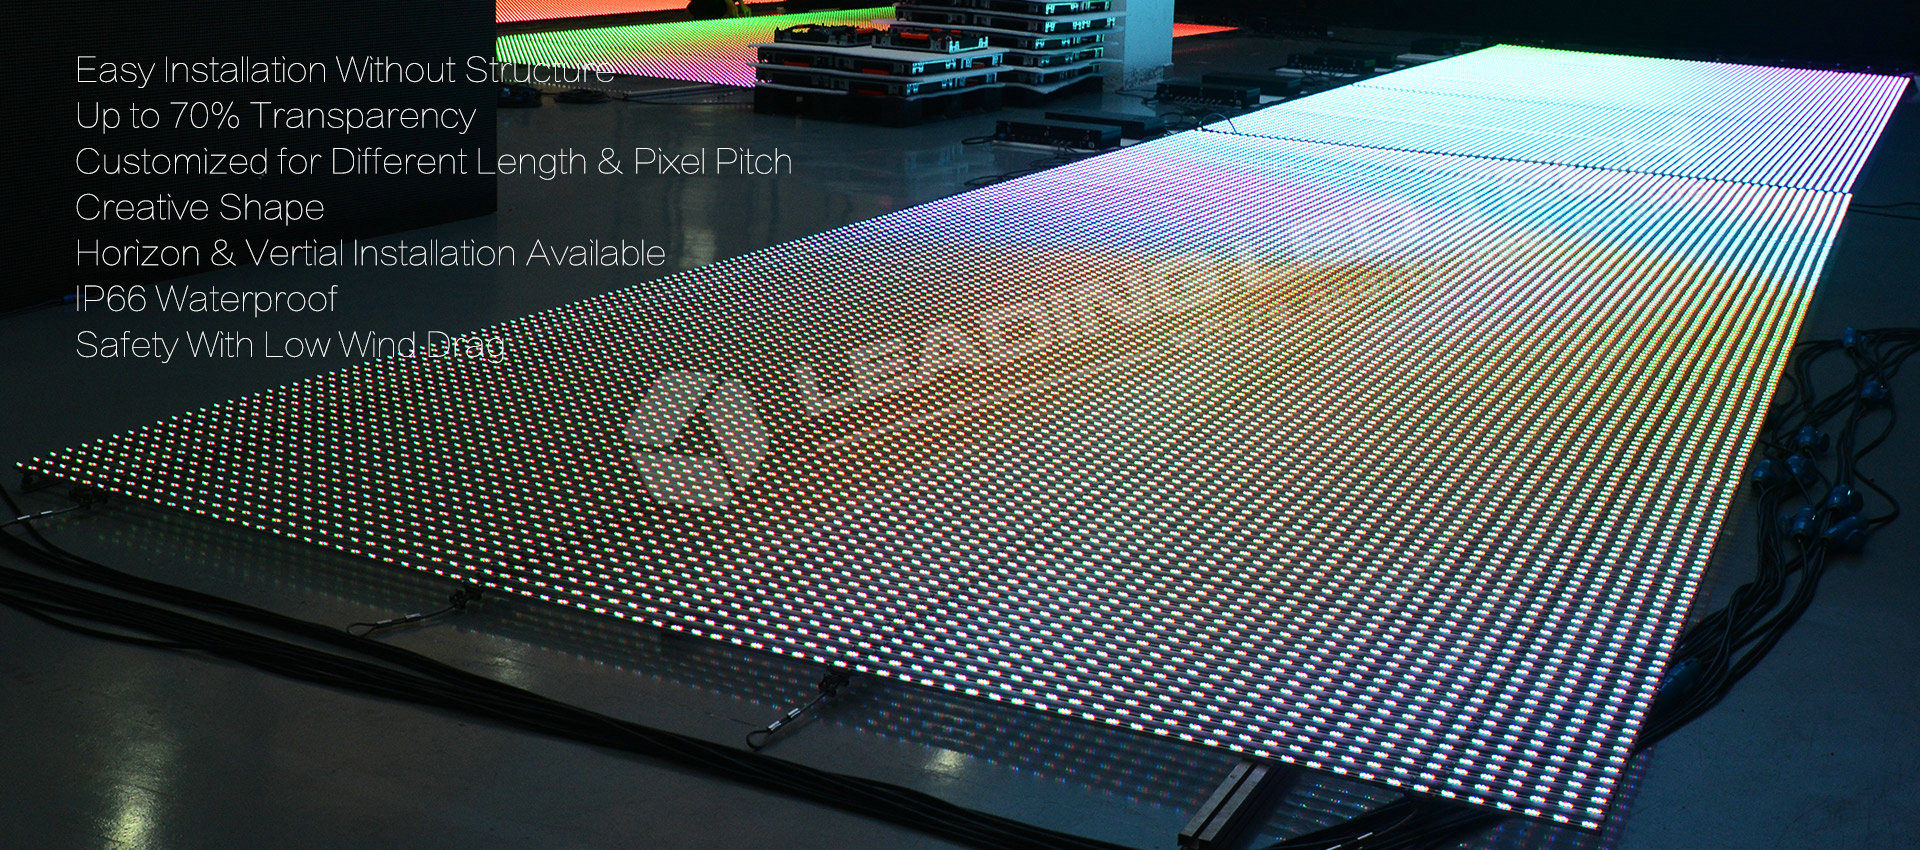 LED display bar highly transparent LED Display bar